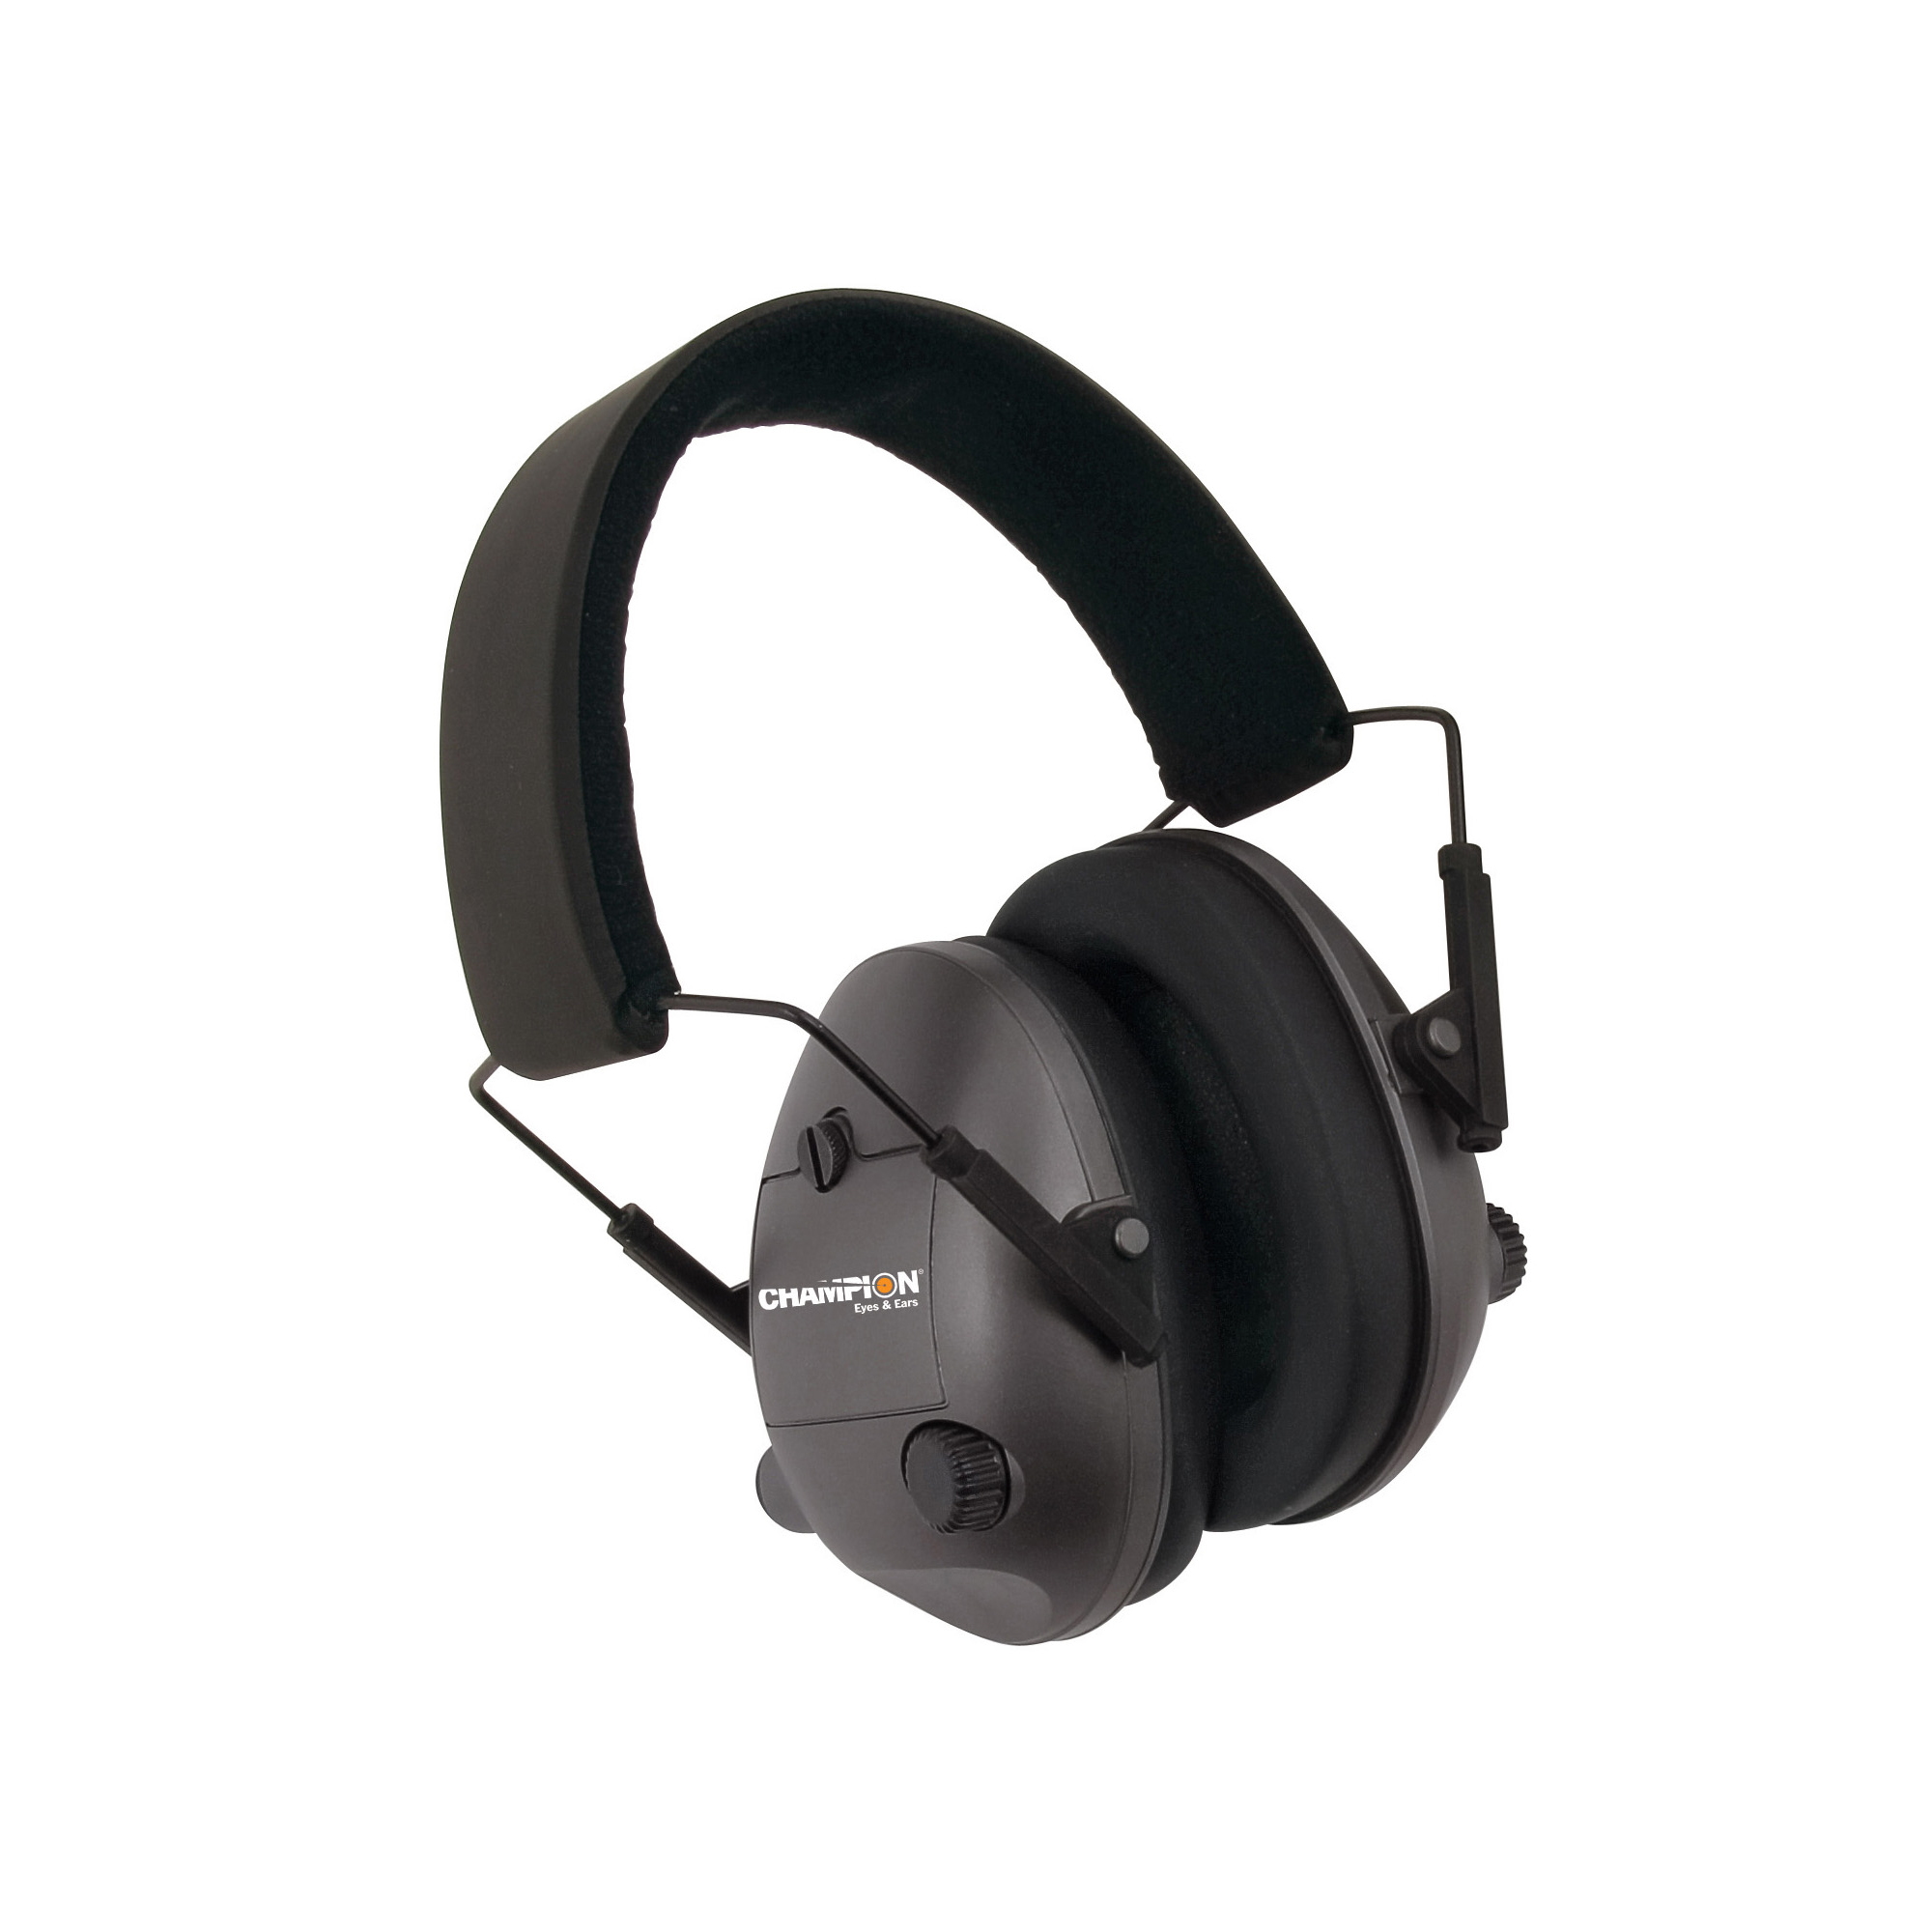 "Enjoy safe shooting with new sound dampening ear muffs from Champion. These comfortable"" stylish muffs provide superior hearing protection while remaining light and comfortable for the shooter. Don't let your shooting passion damage your hearing-rely on Champion protection when at the range or in the field."